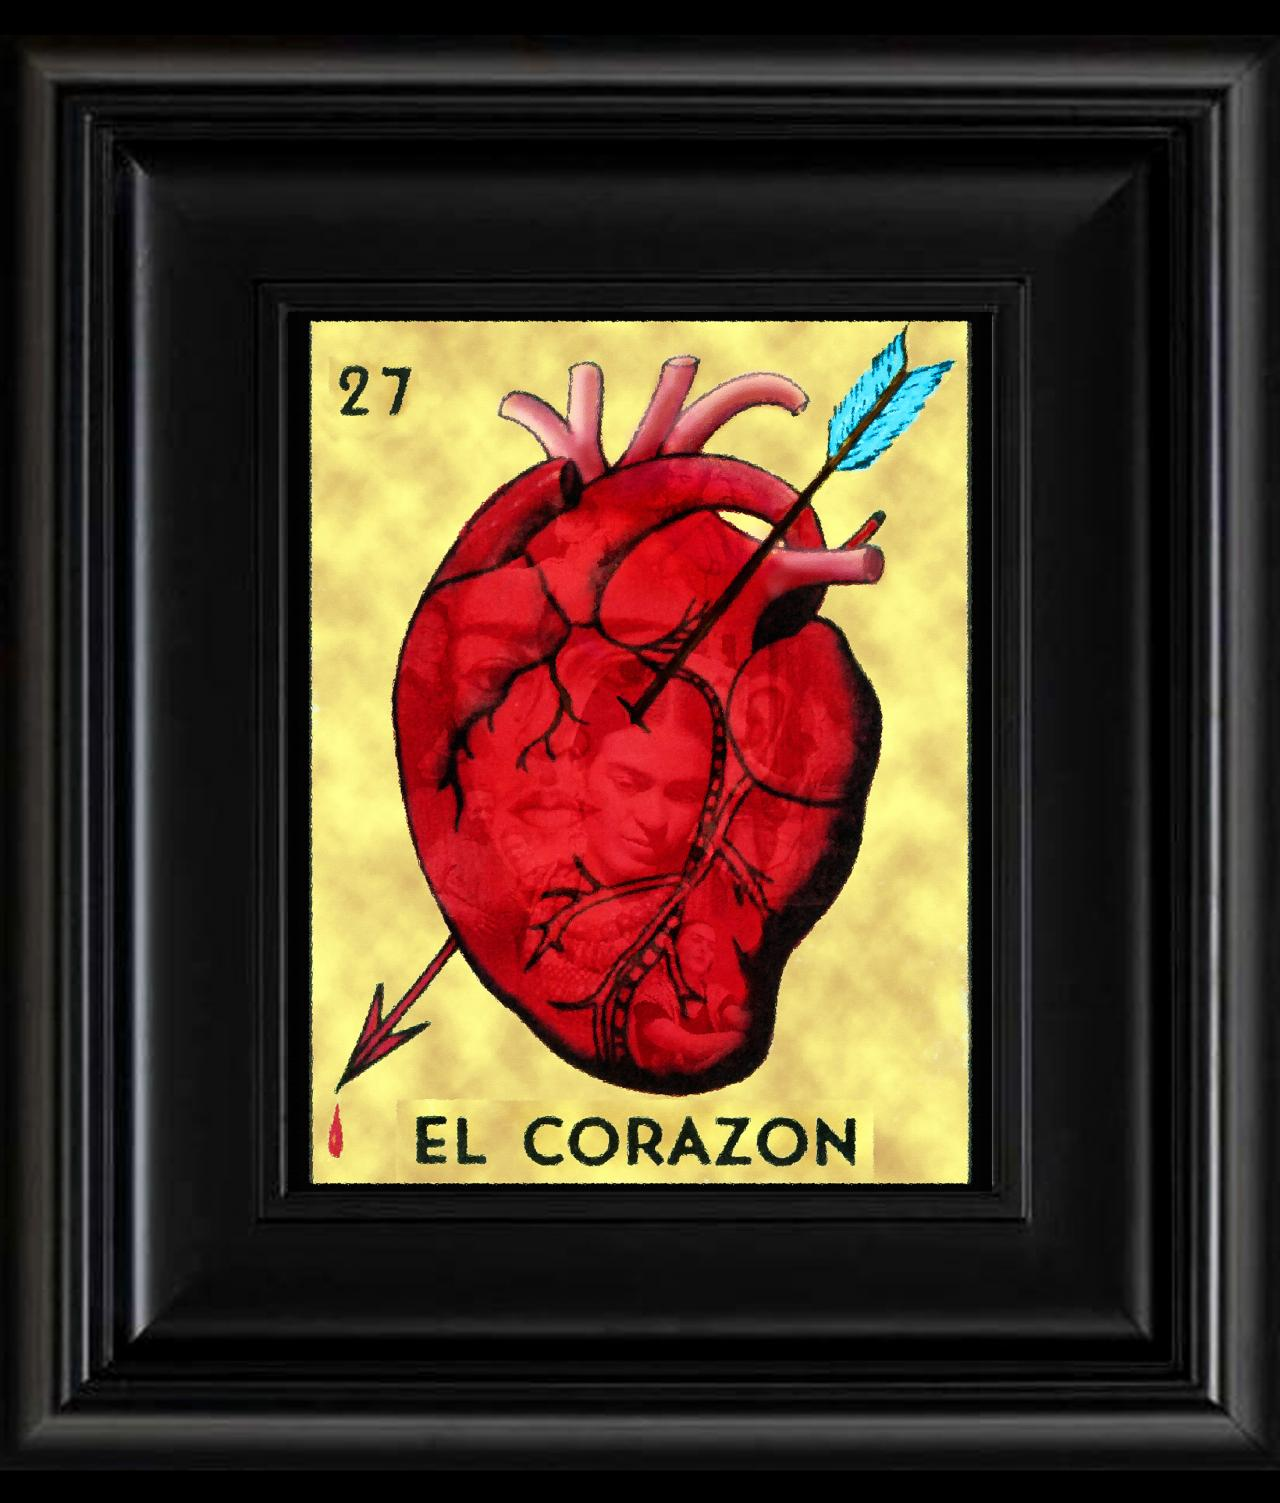 FRIDA KAHLO day of the dead LA LOTERIA EL CORAZON CARD digital oil painting design 8' X 10' photo print